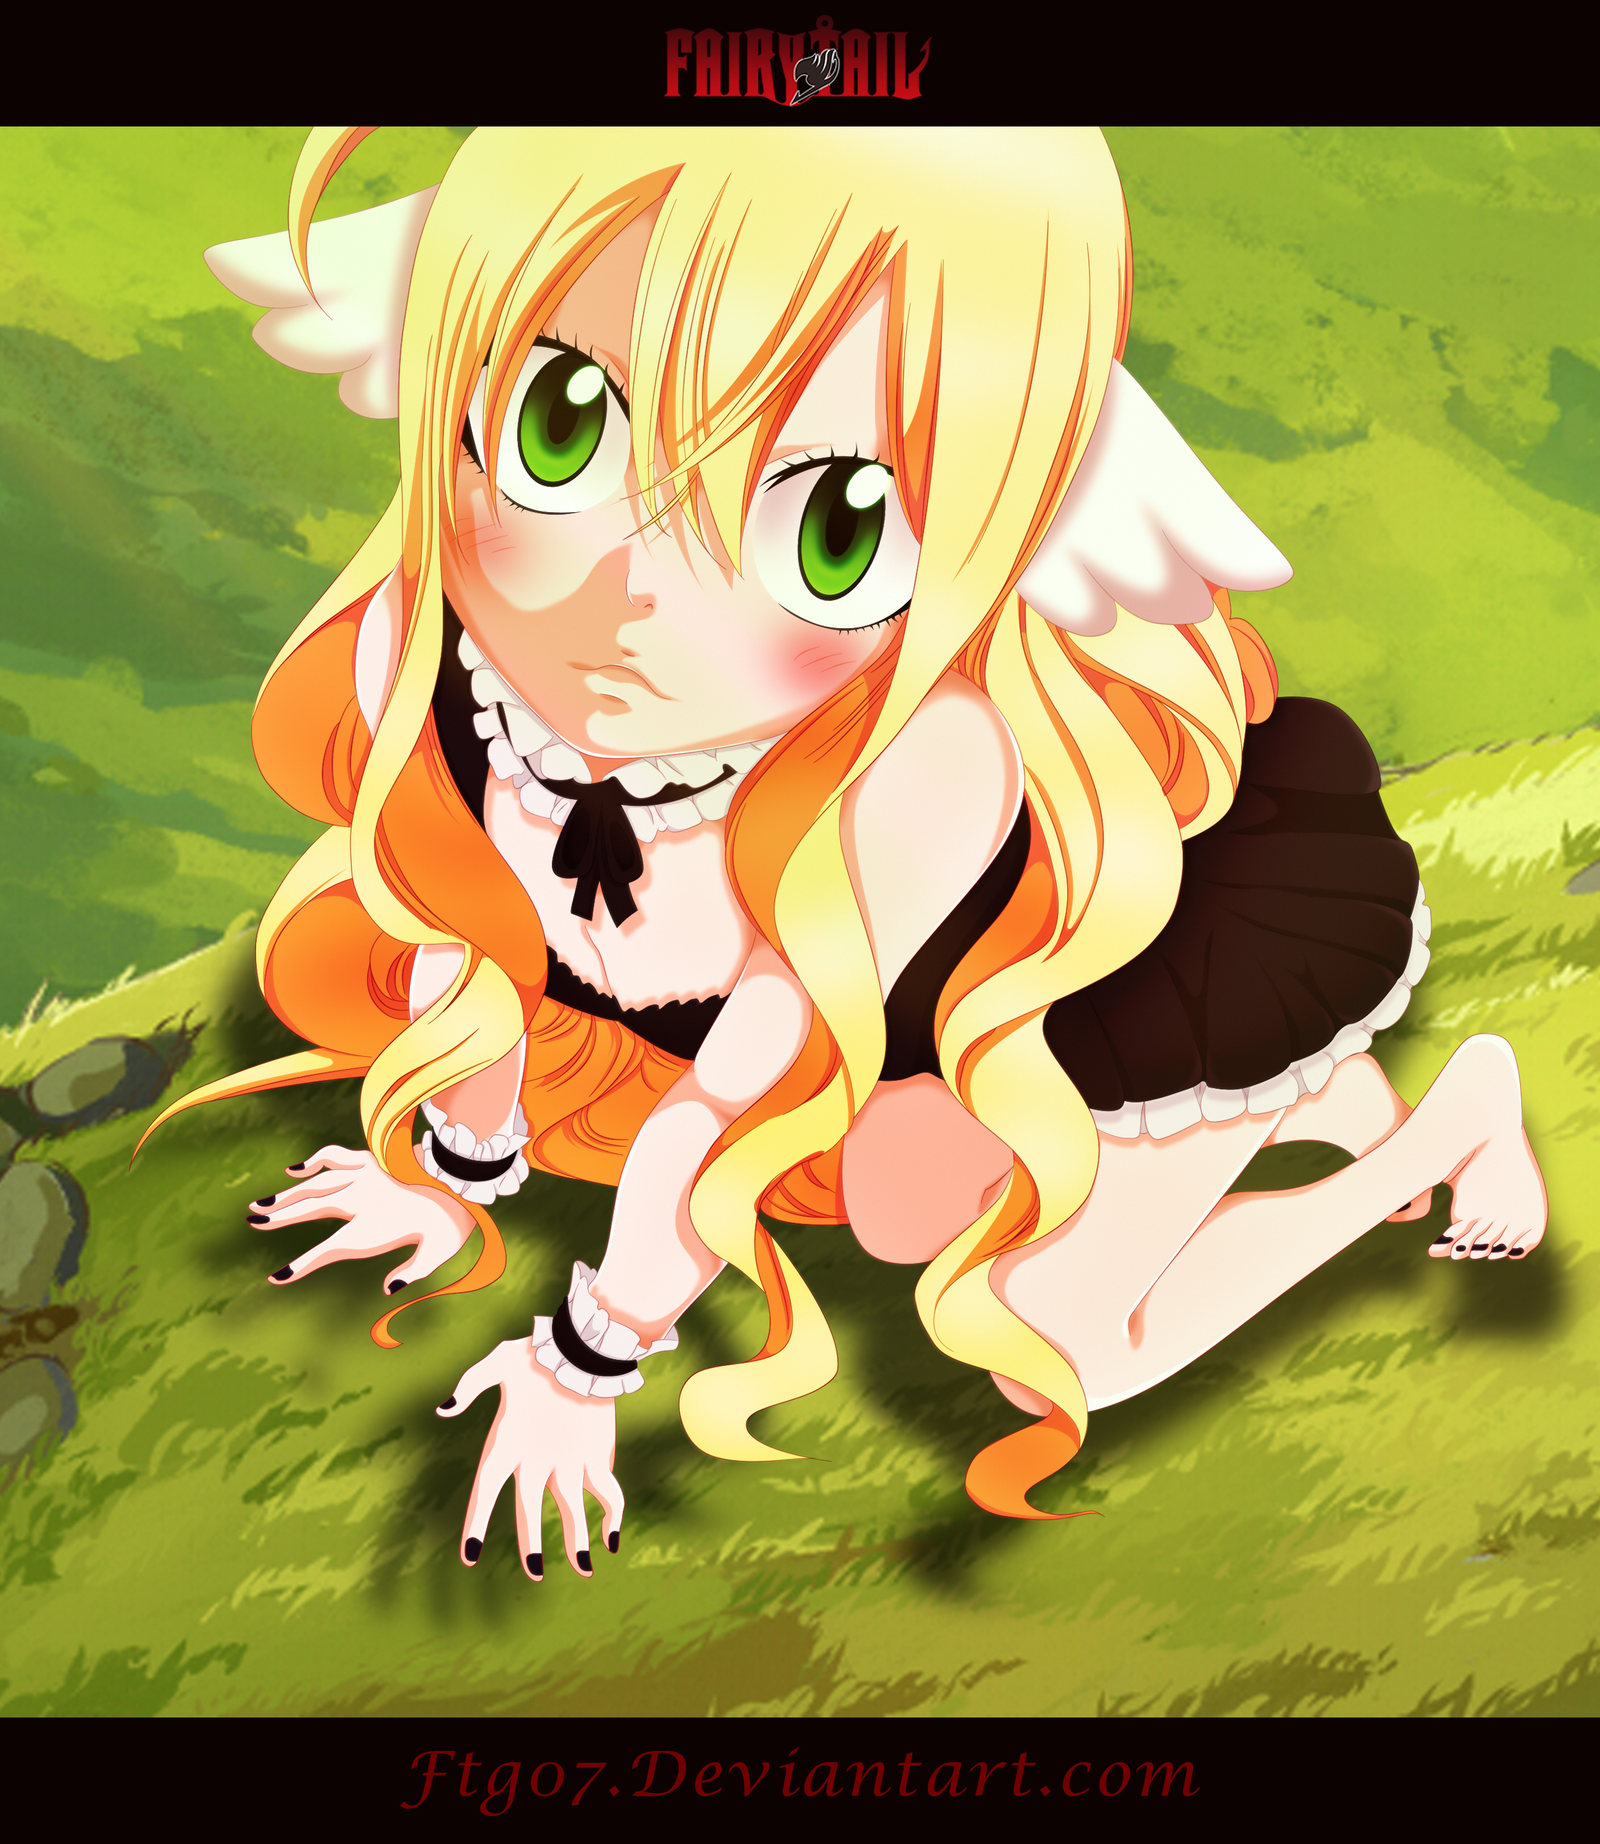 New Gallery of Fairy Tail Zero Photos and wallpapers to Browse 1600x1844